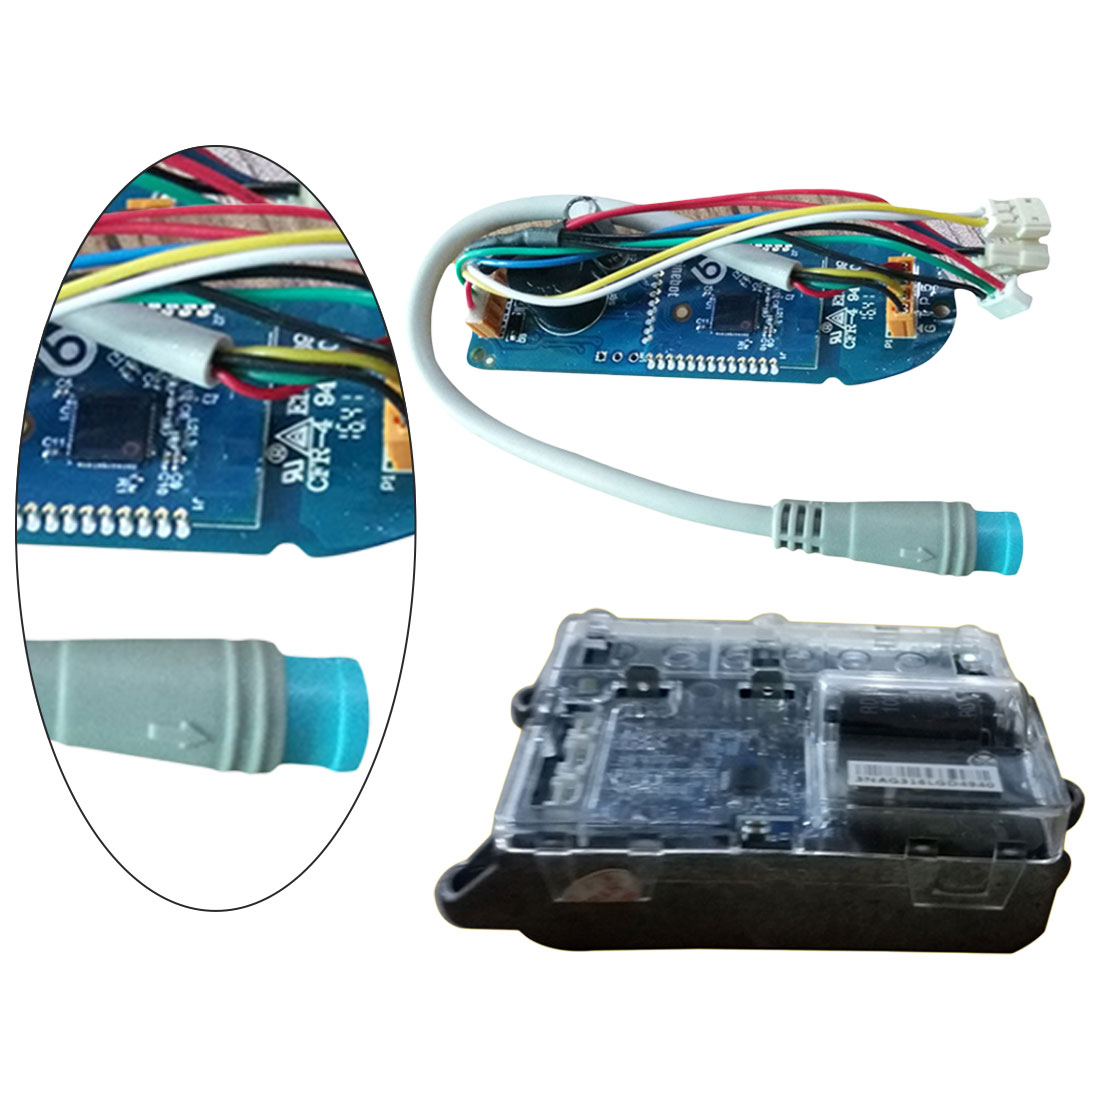 New BT Instrument Circuit Board Scooter Mainboard Dashboard Controller Skateboard Parts For XIAOMI Mijia M365 Electric Scooter new bt instrument circuit board scooter mainboard dashboard controller skateboard parts for xiaomi mijia m365 electric scooter